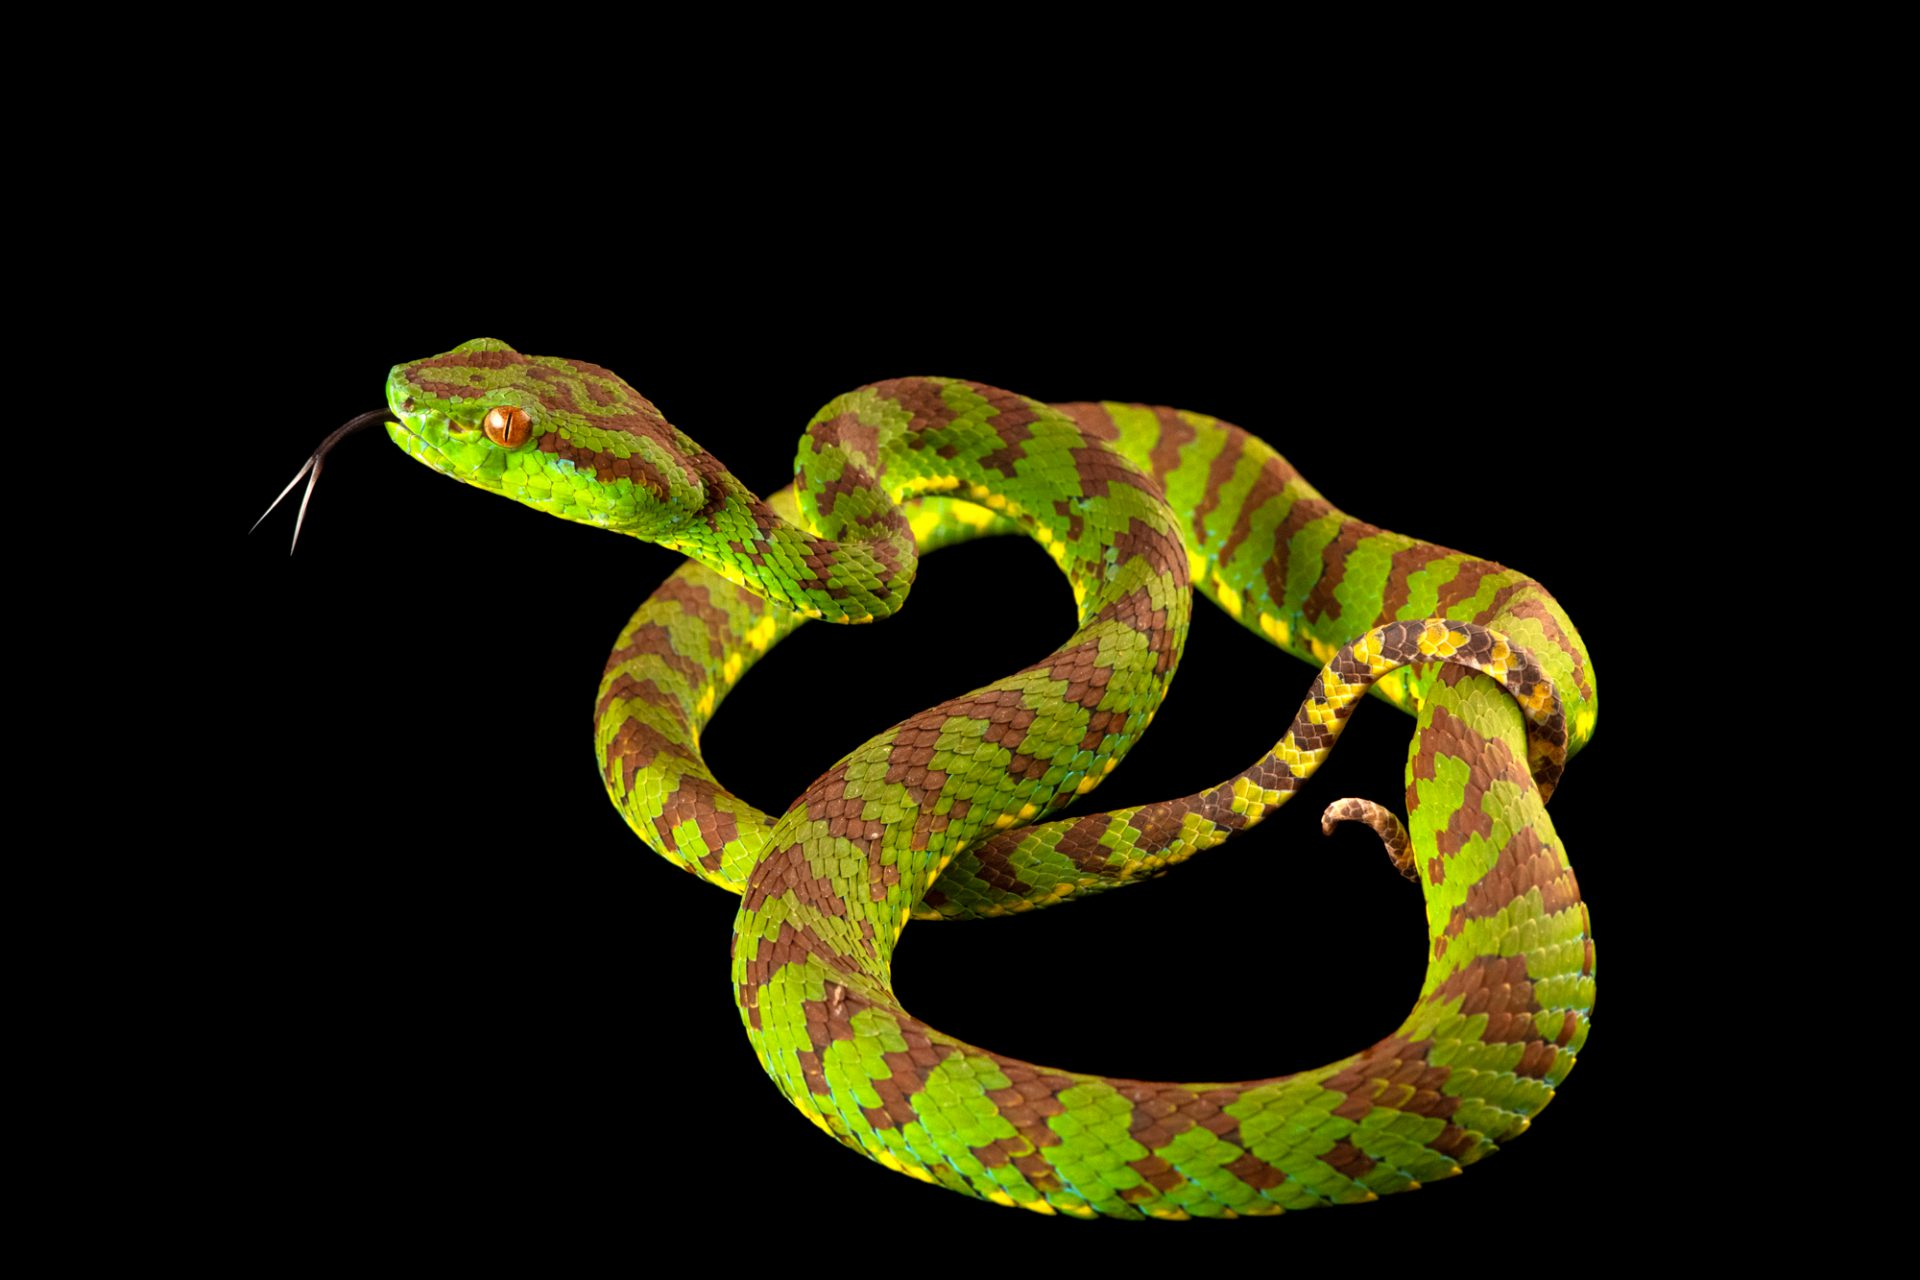 Photo: A Philippine pit viper (Trimeresurus flavomaculatus) at the Avilon Wildlife Conservation Foundation.